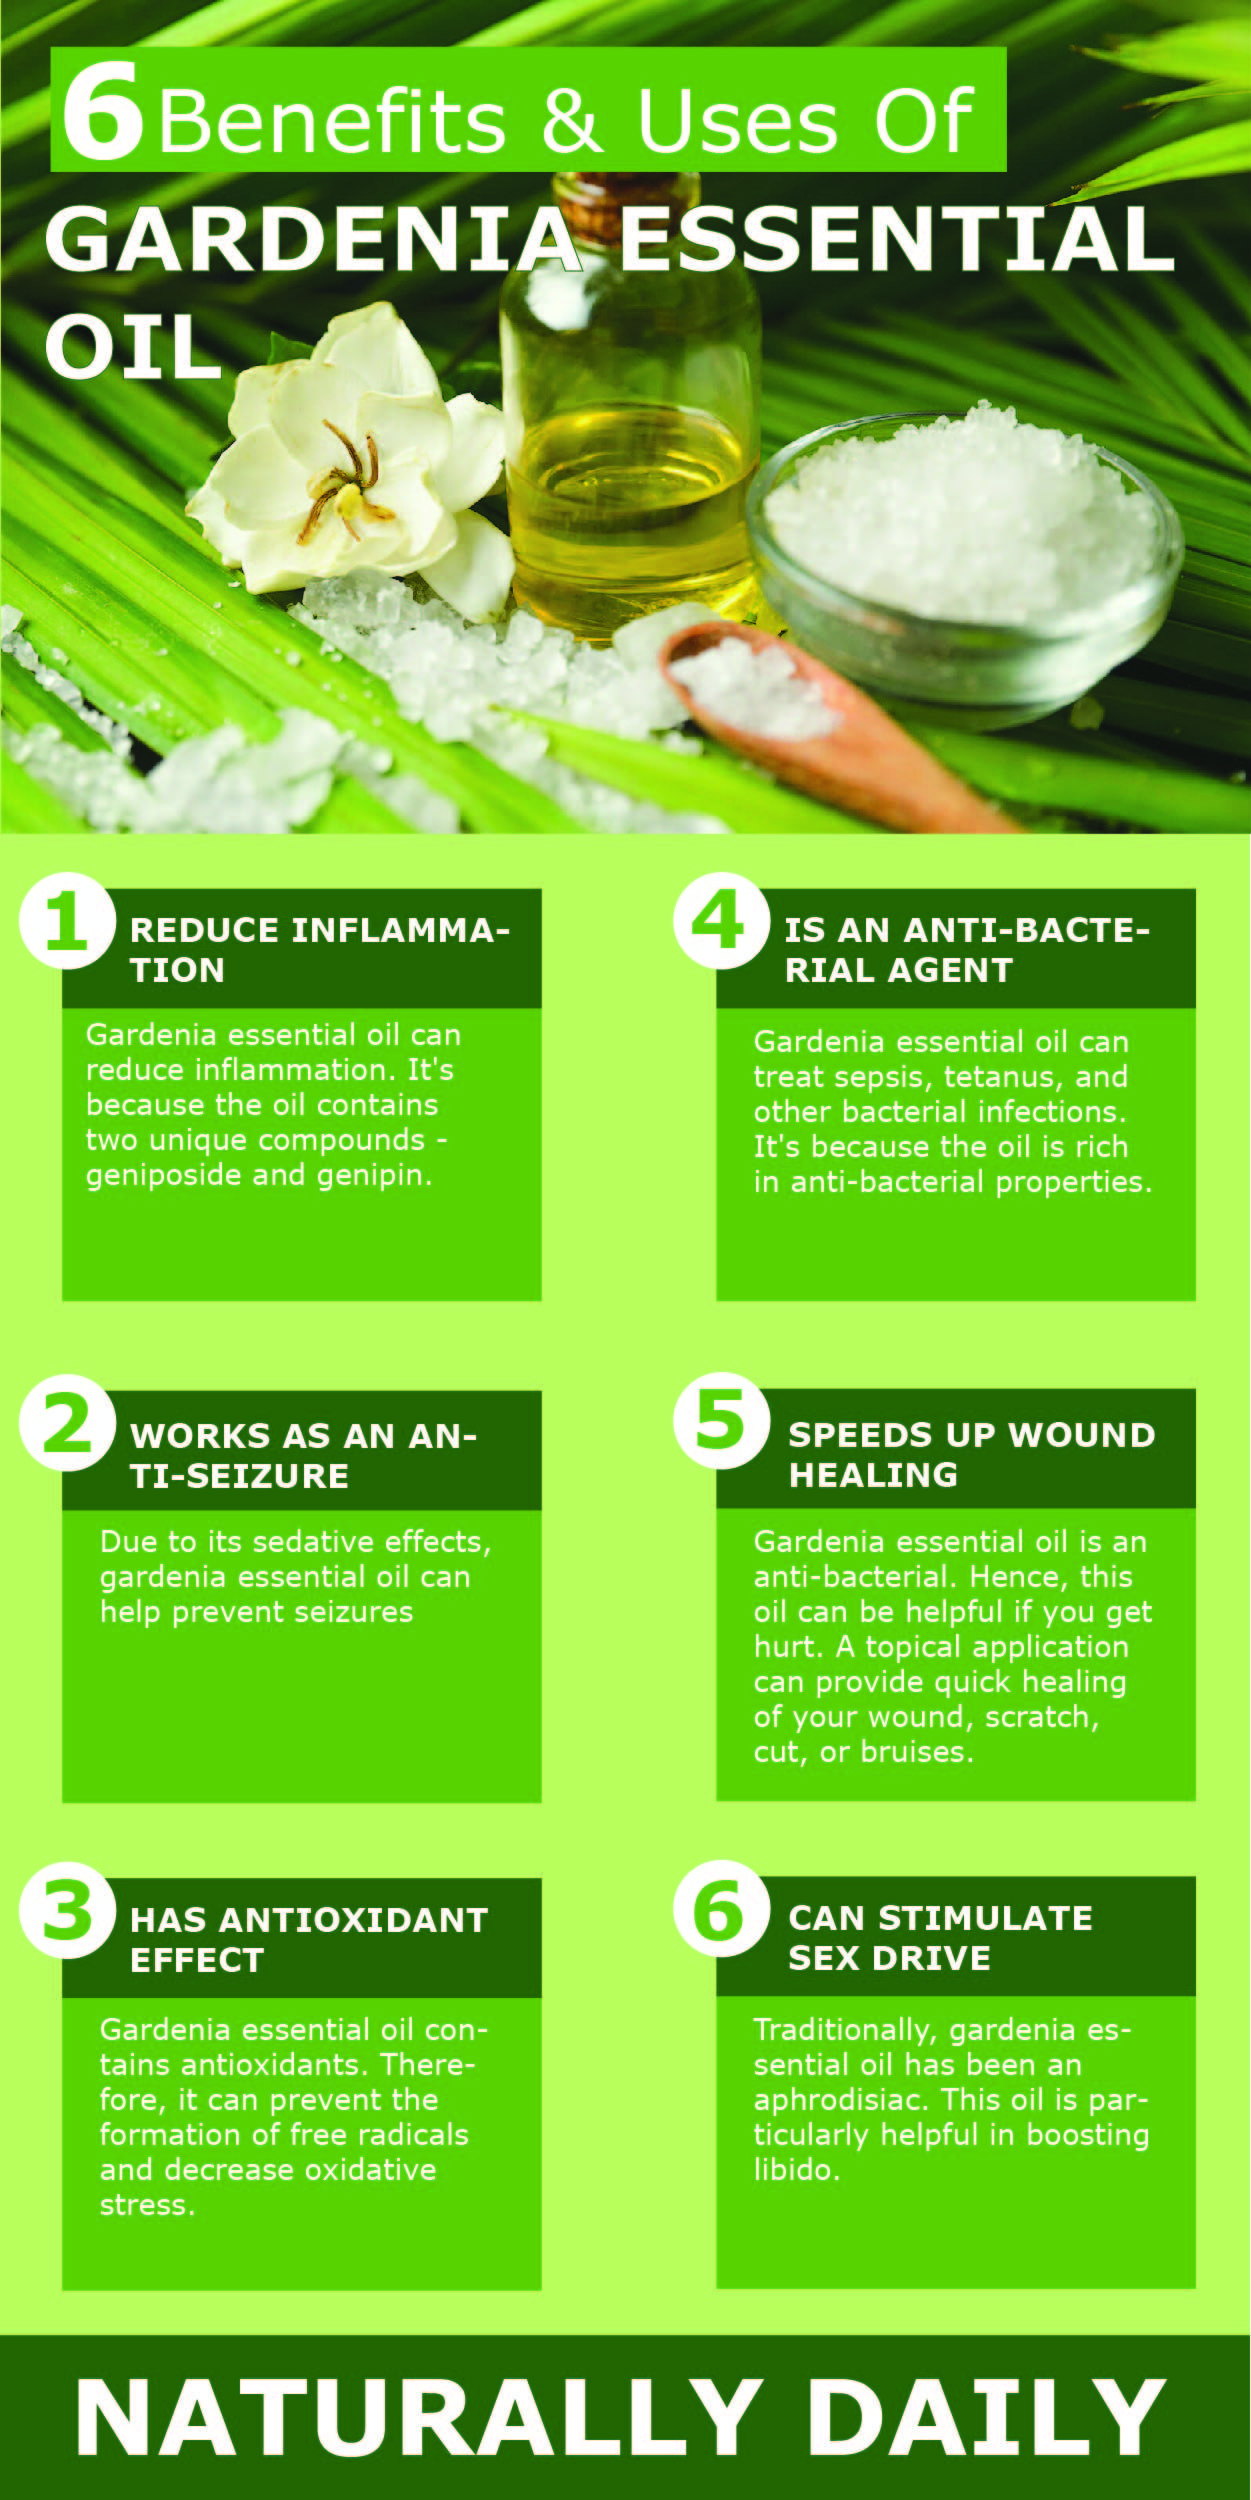 6 Benefits And Uses Of Gardenia Essential Oil Gardenia Essential Oil Gardenia Essential Oils